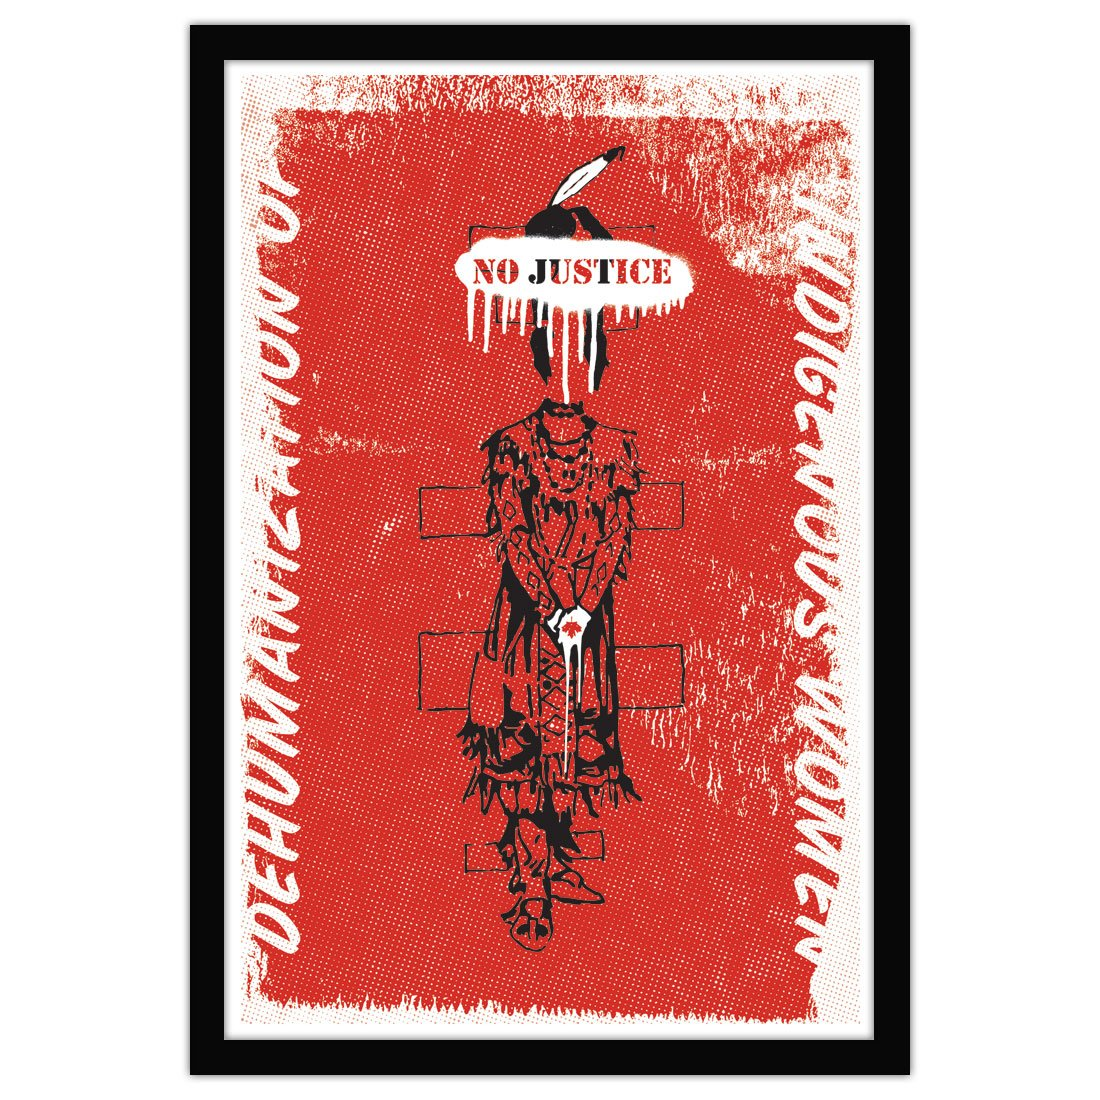 David Bernie Shop Prints Posters Fine Art Dehumanization